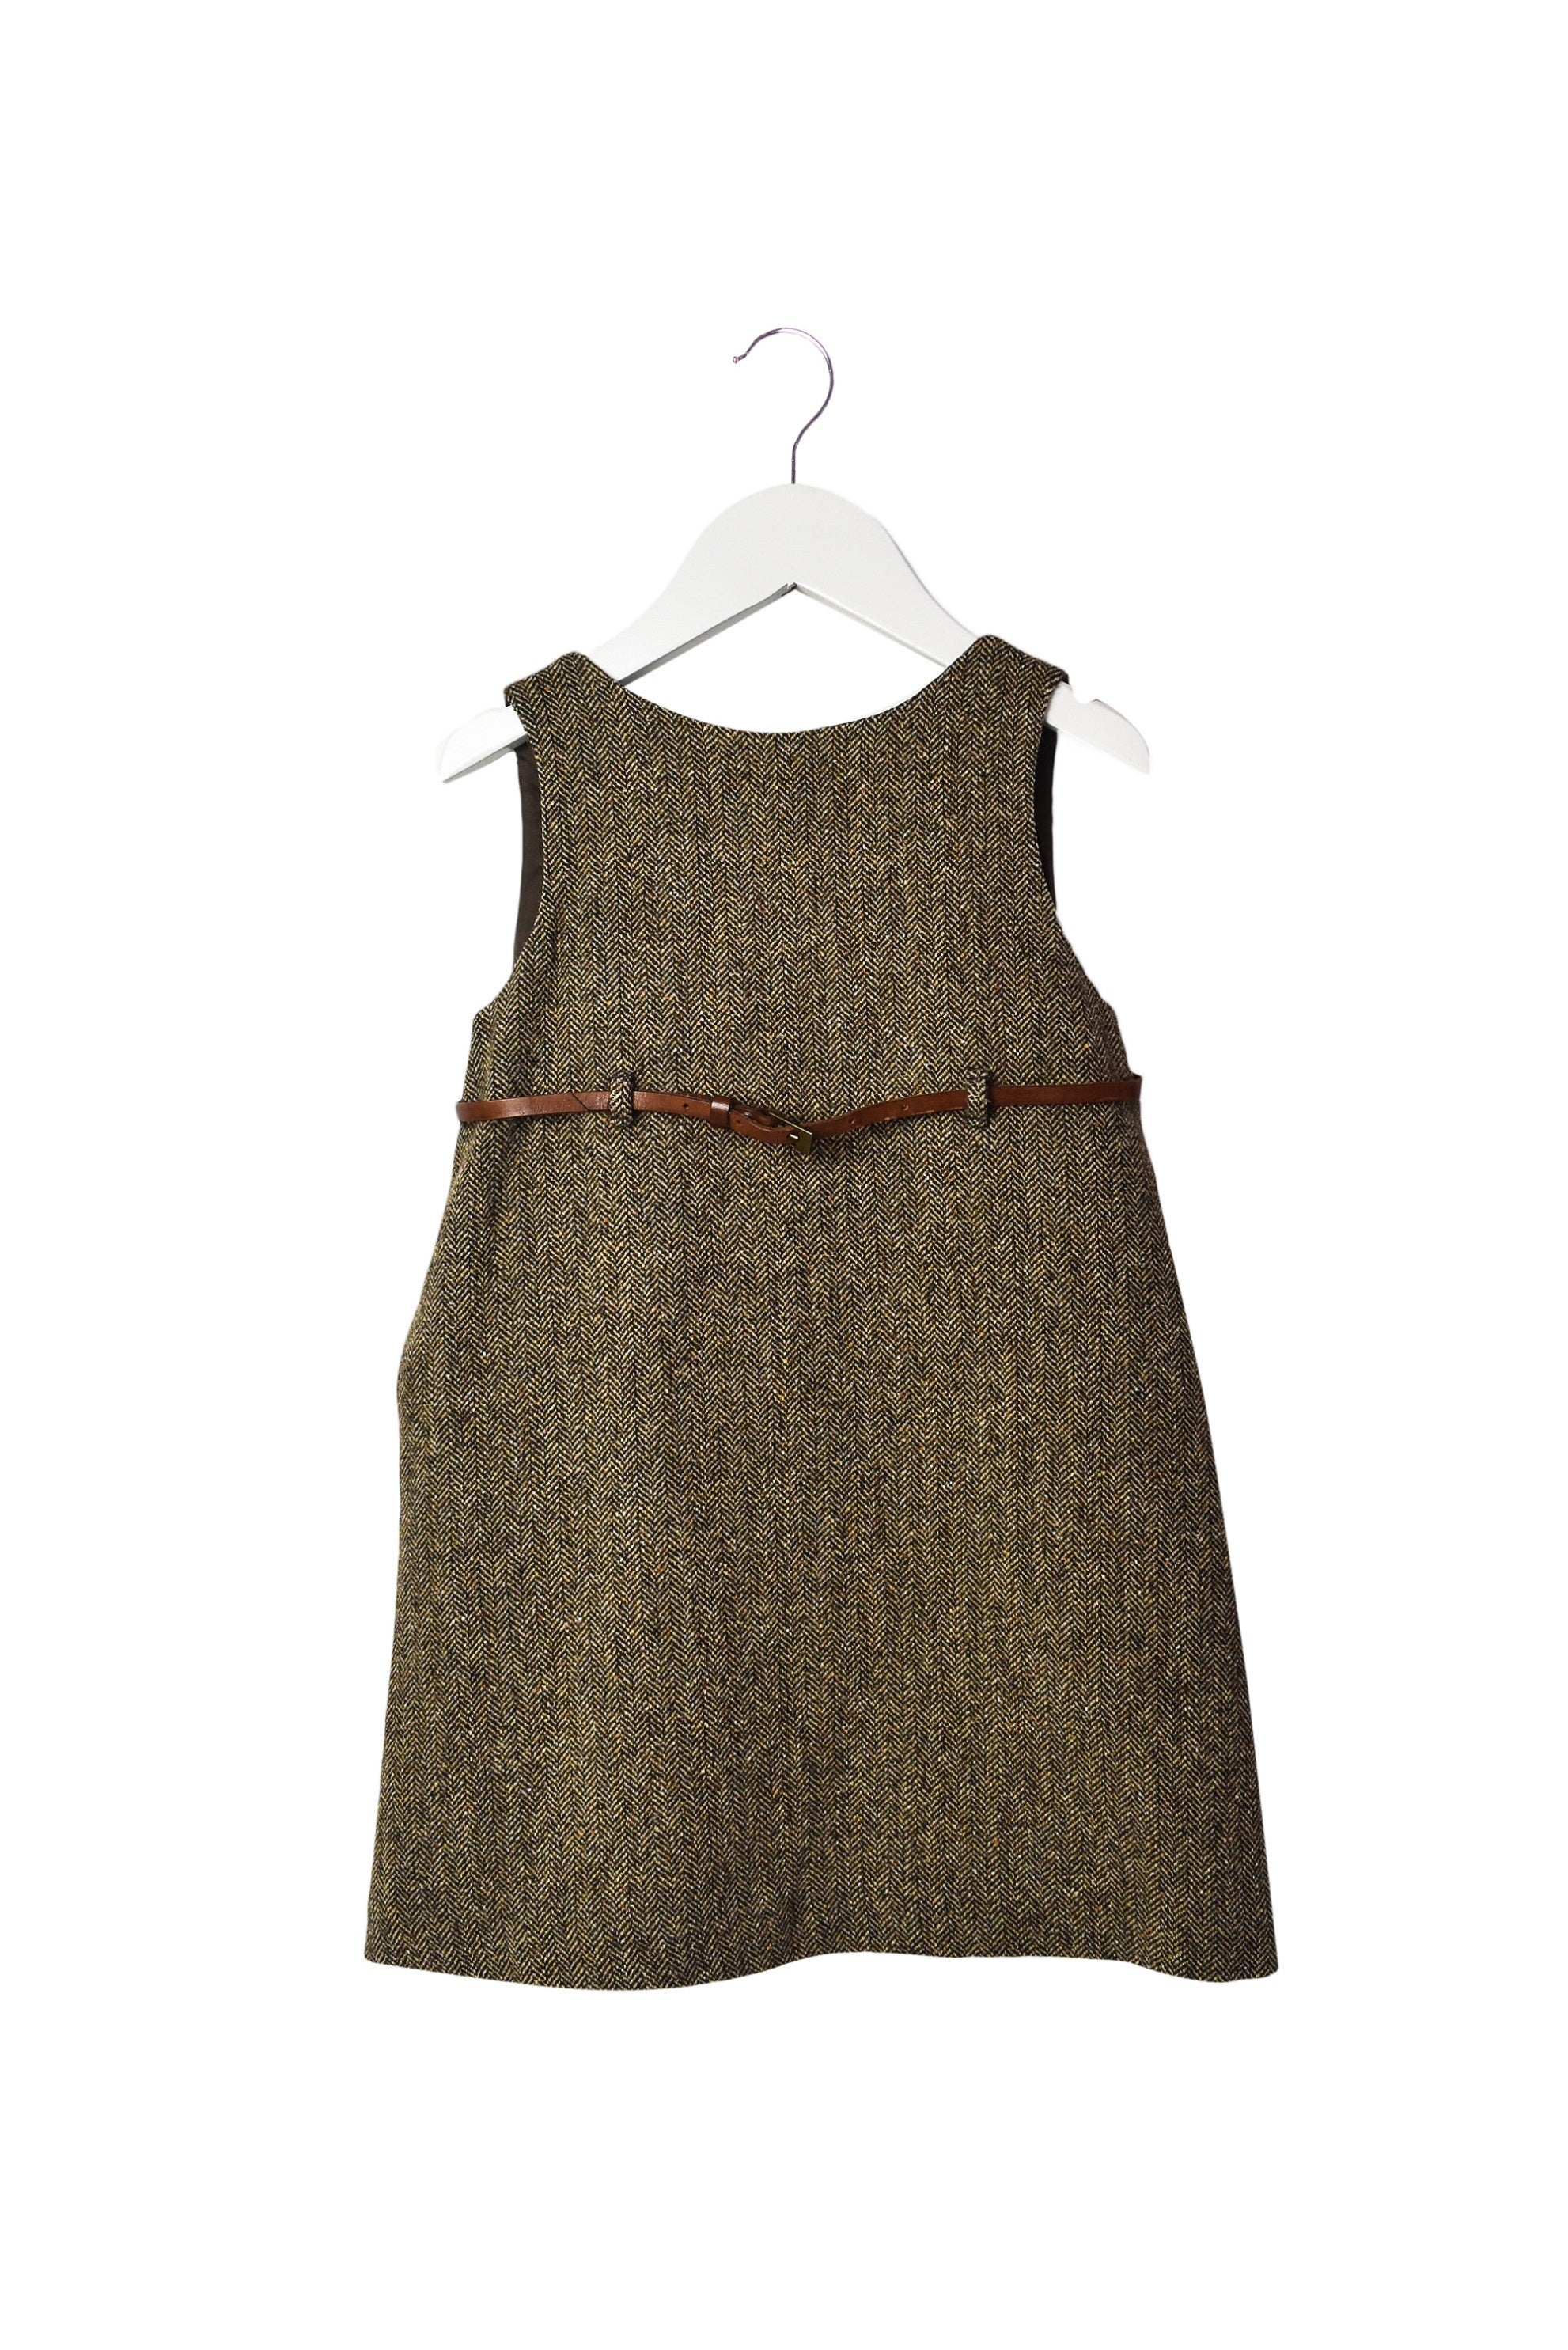 10007282 Bonpoint Kids~ Dress 4T at Retykle